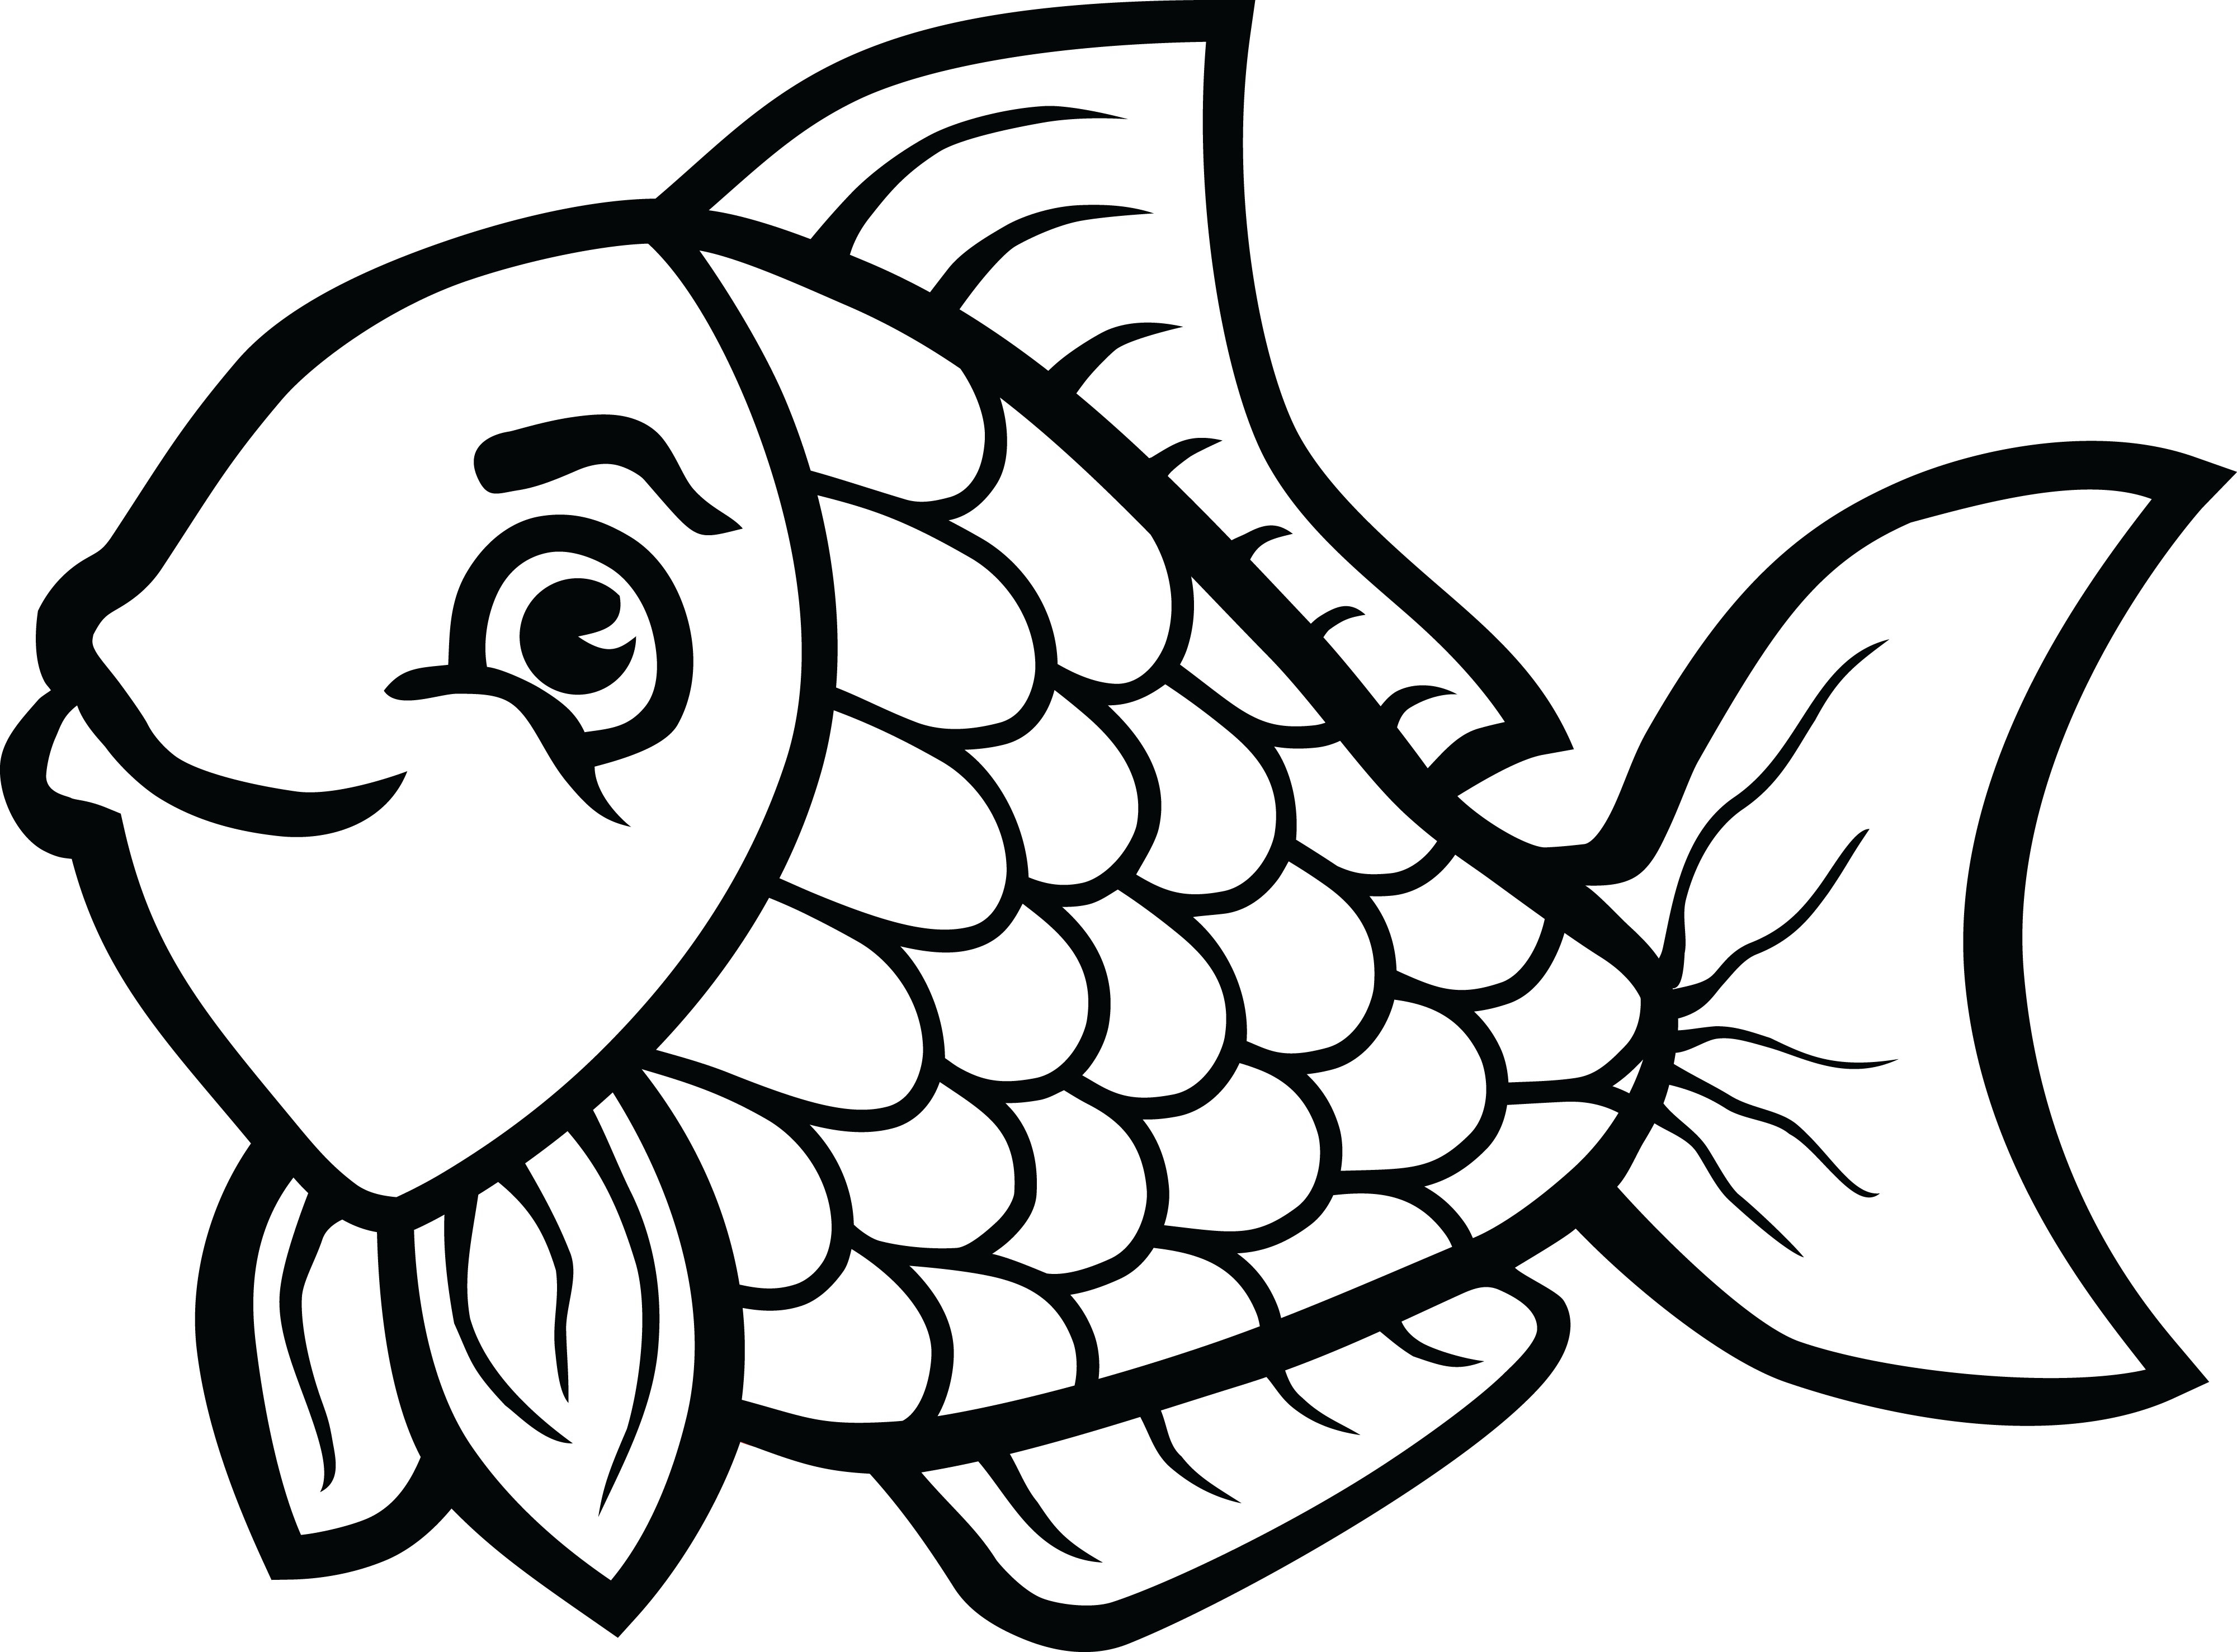 Fish tail clipart black and white clipart free stock 28+ Collection of Fish Clipart Black And White Free | High quality ... clipart free stock